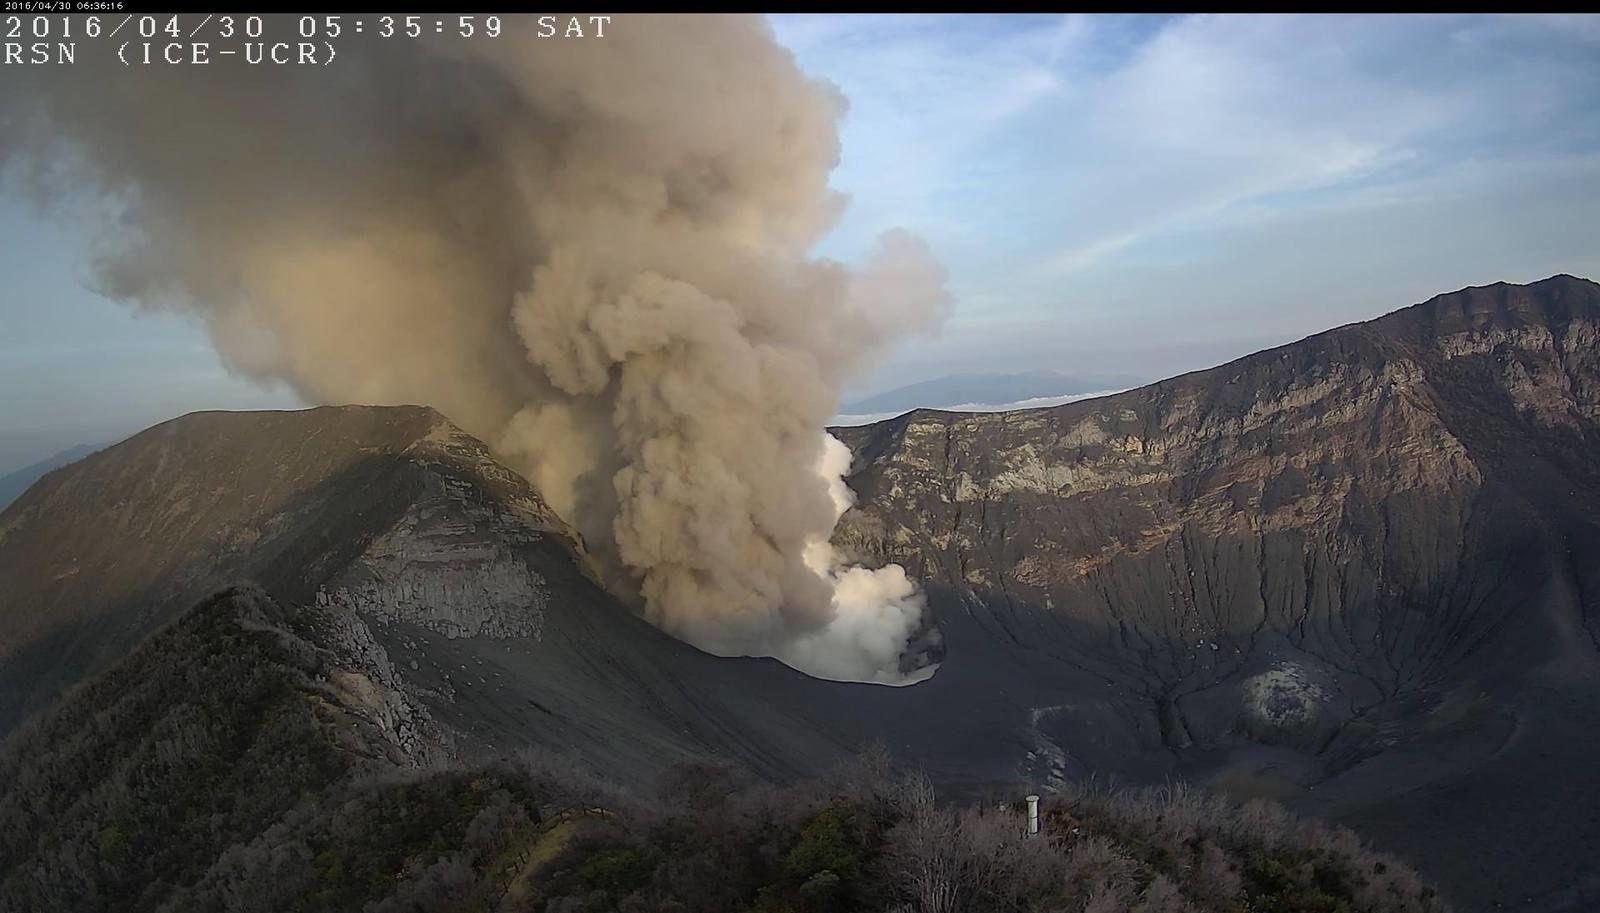 Turrialba - émissions du 30.04.2016 / 5h35 - webcam RSN